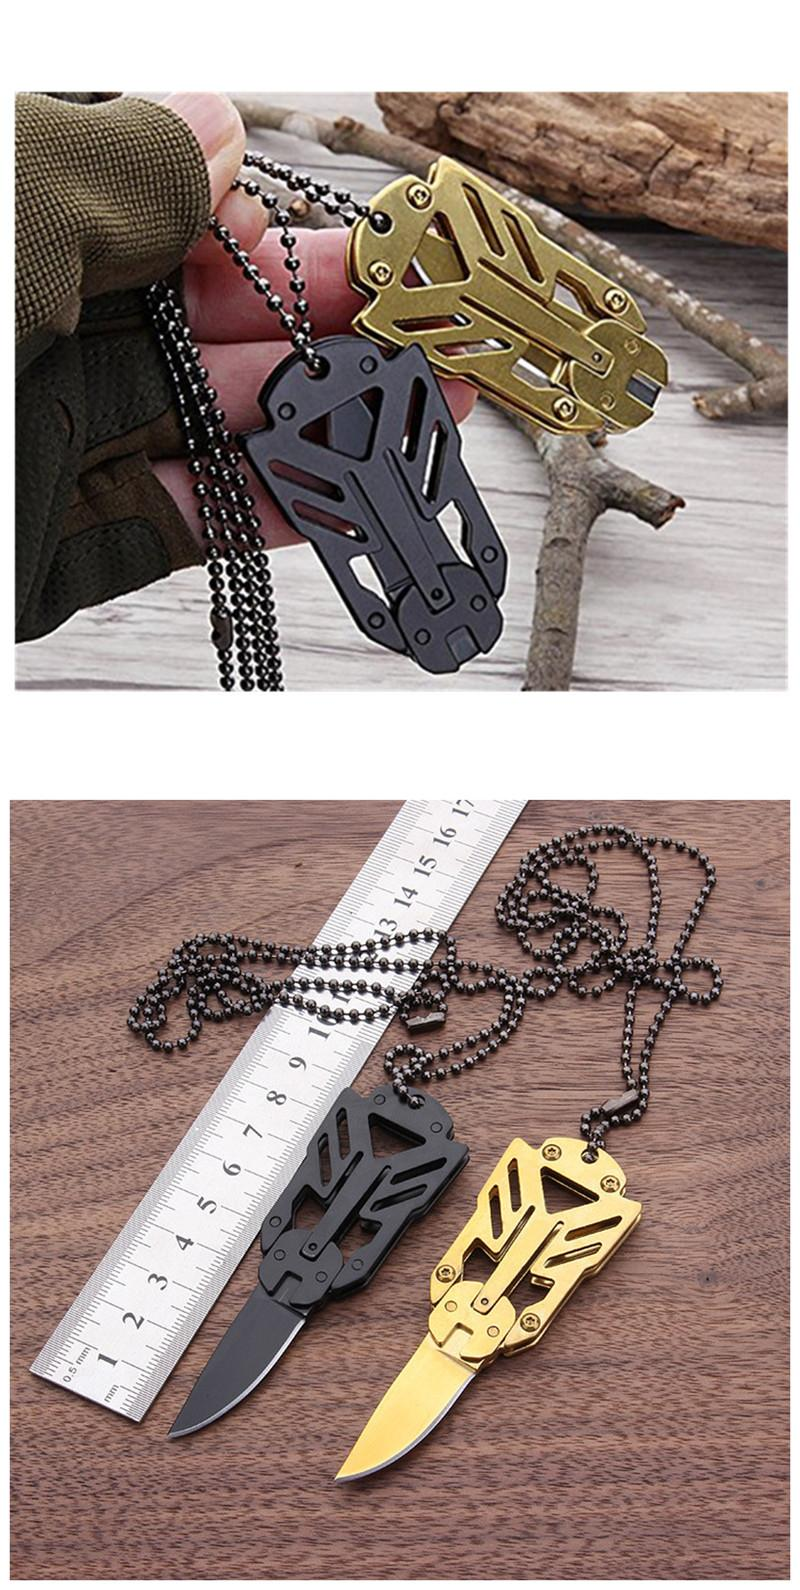 Multiple Tools EDC Outdoor Survival Tools Survive Self-Defense Necklace Camping Stool Folding Tactical Knives for Hiking Camping (2)